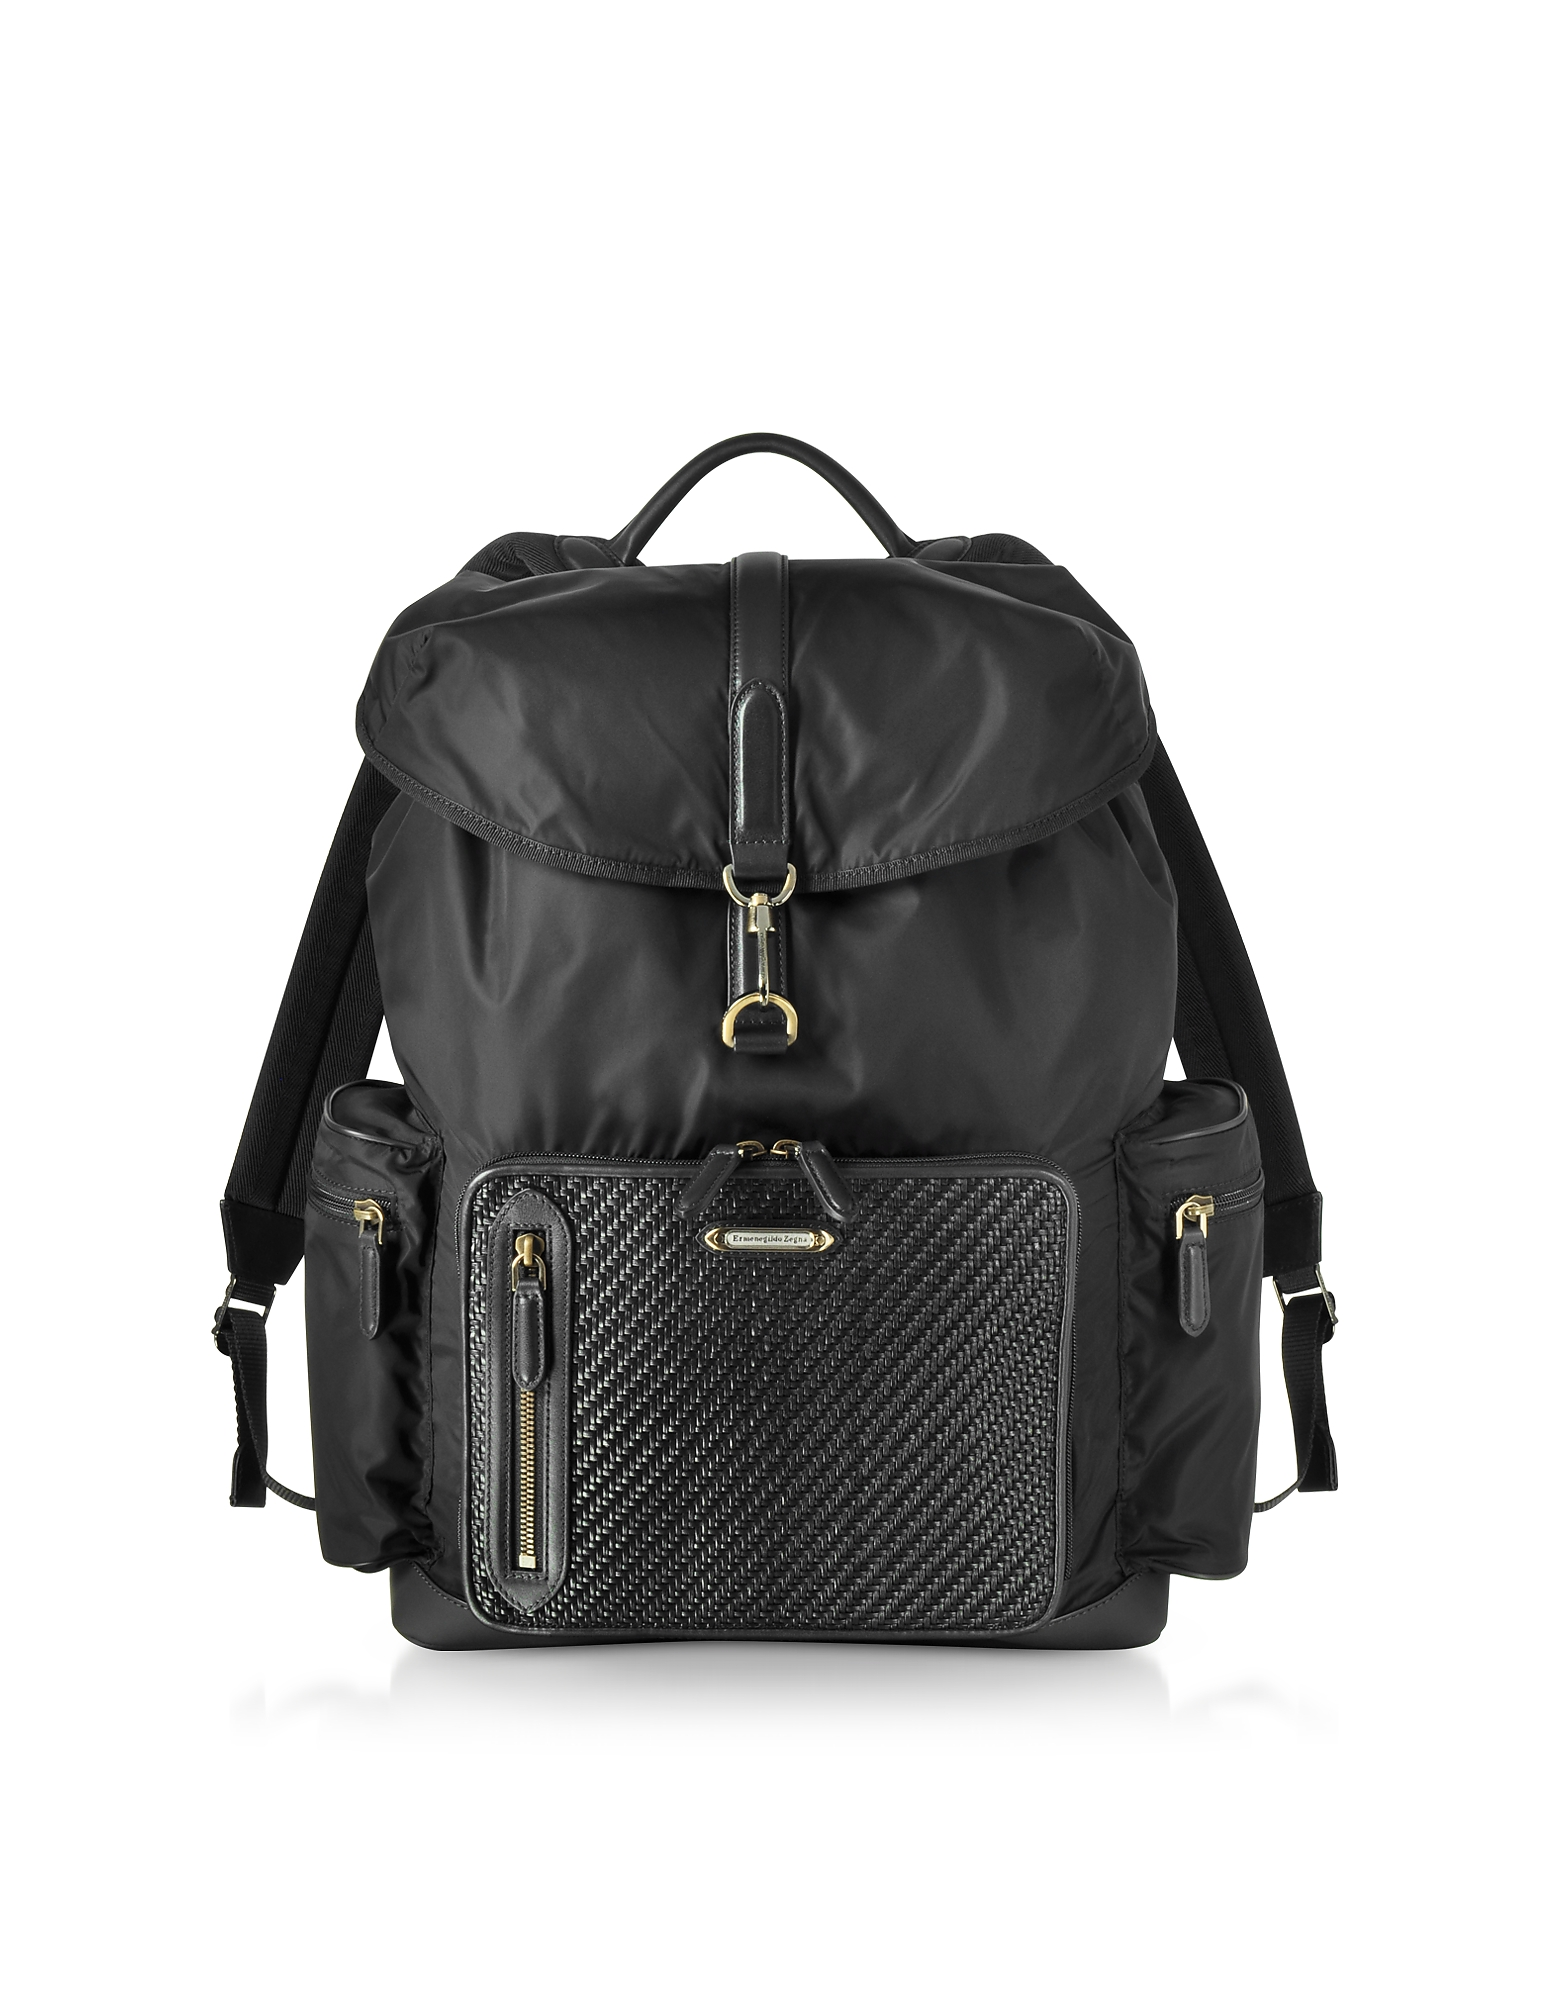 Ermenegildo Zegna Backpacks, Black Nylon and Woven Leather Backpack